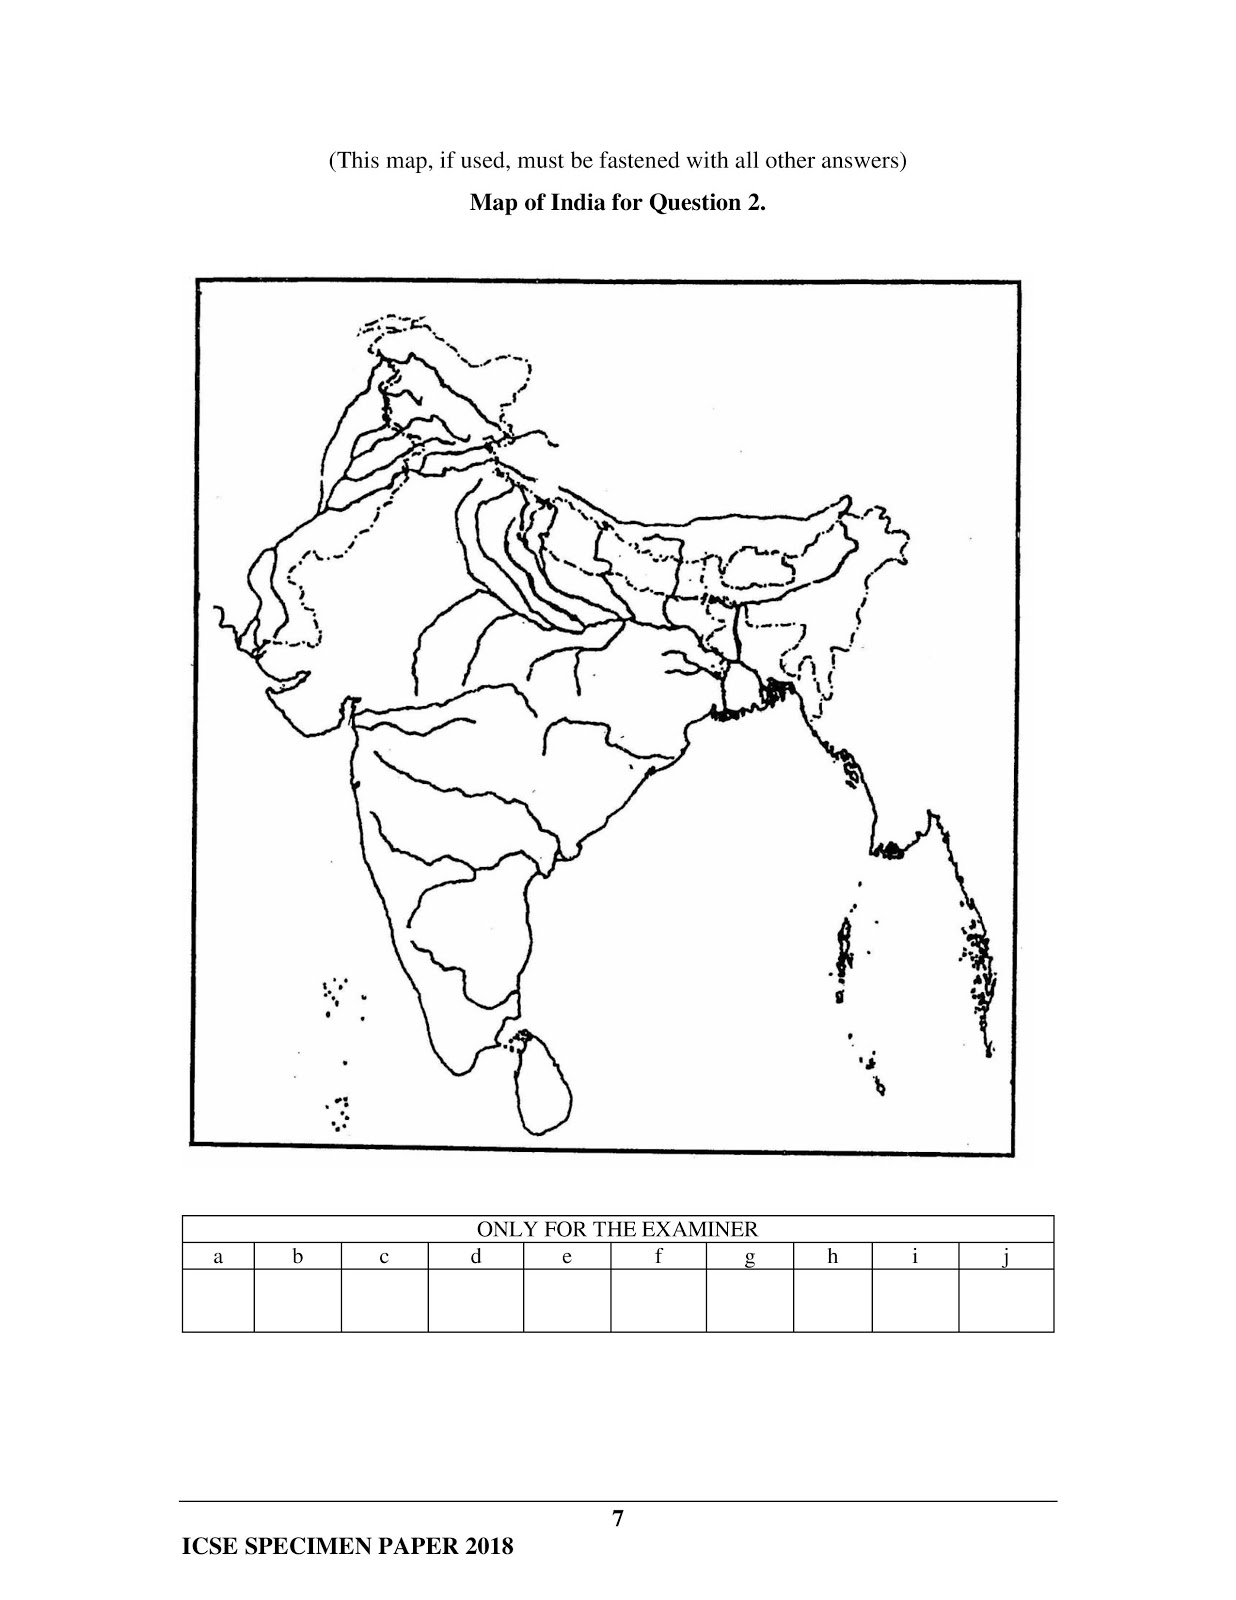 icse 2018 class 10th geography H.C.G Paper 2 specimen question paper